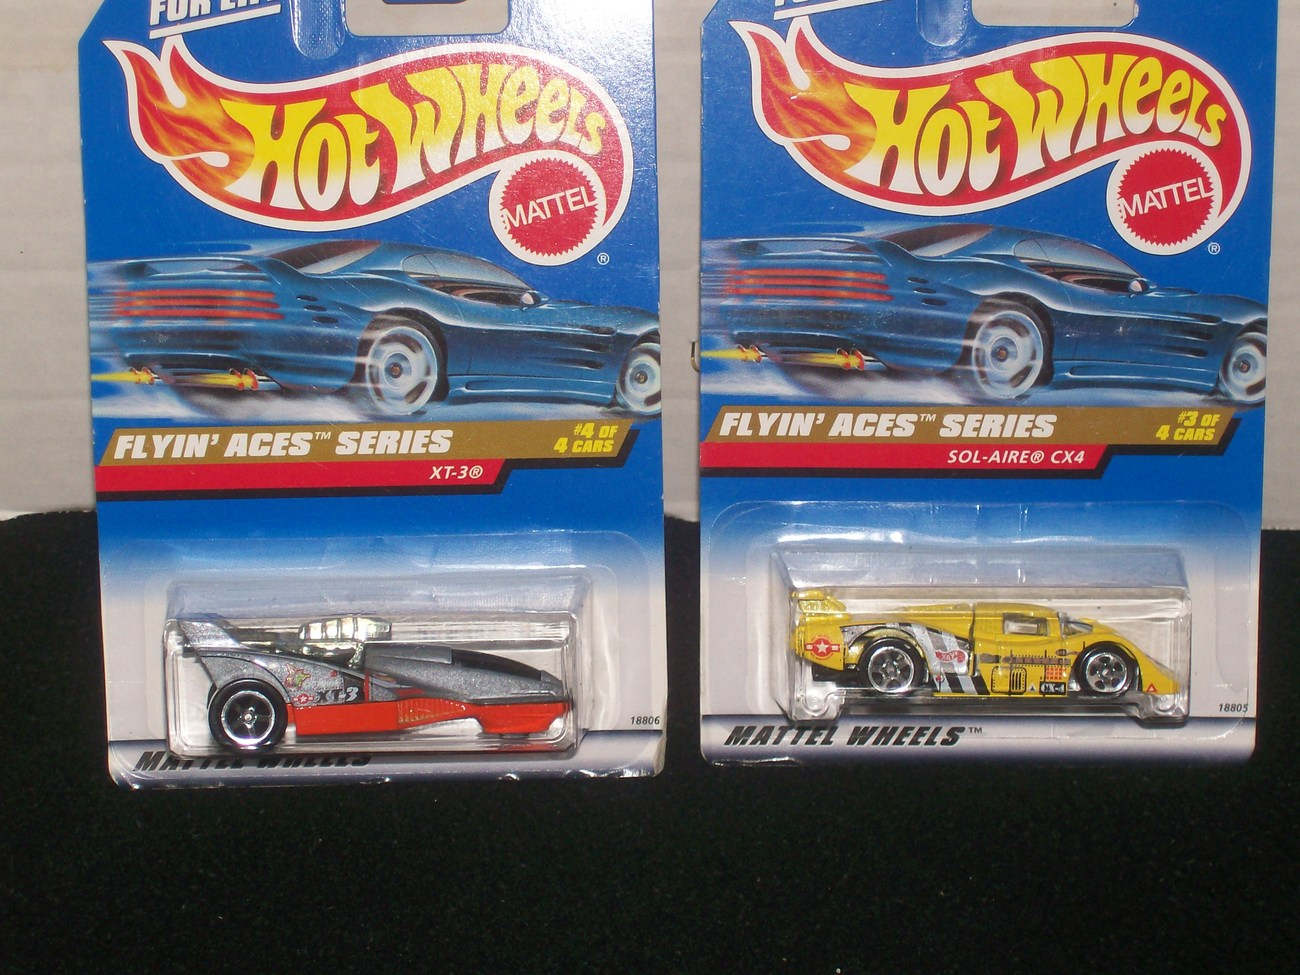 Hot Wheels 1998 Flyin' Aces Series Complete Set Of 4